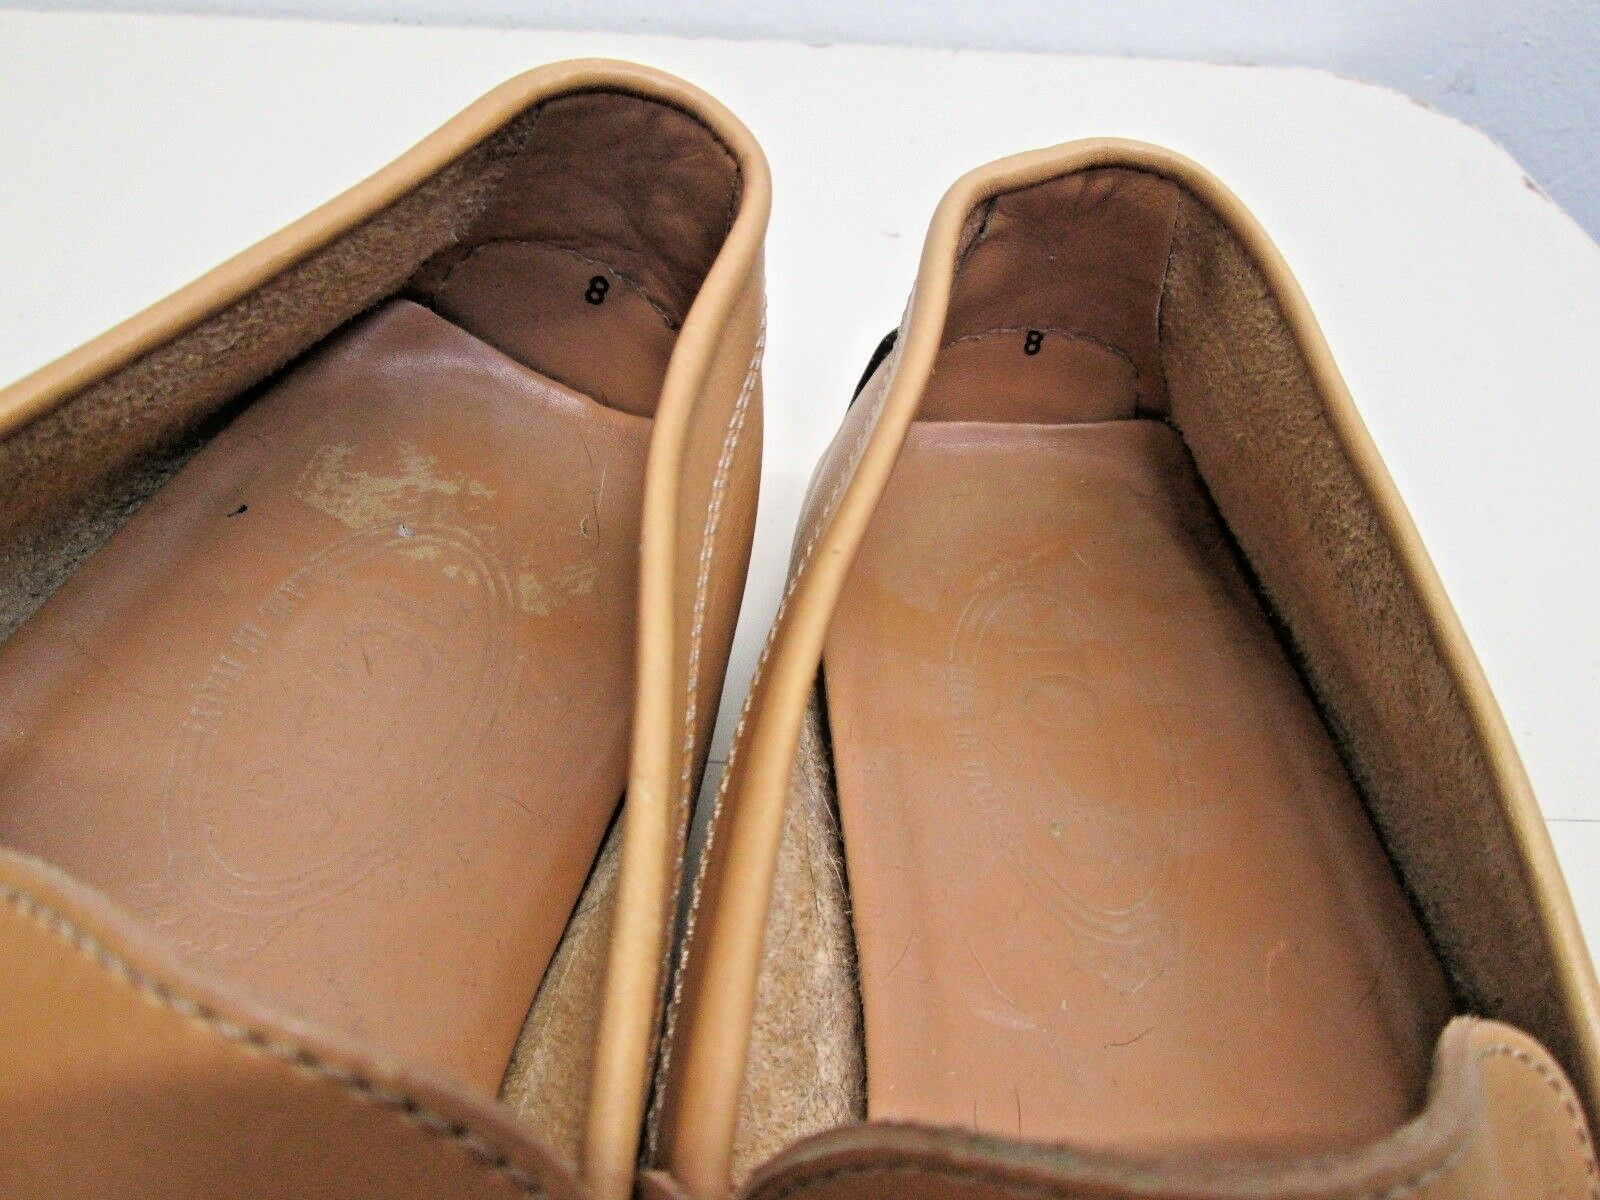 Tod's Driving moccasins penny loafers Leather Italy made sz sz sz 8 Gommini peach EUC! 058b56